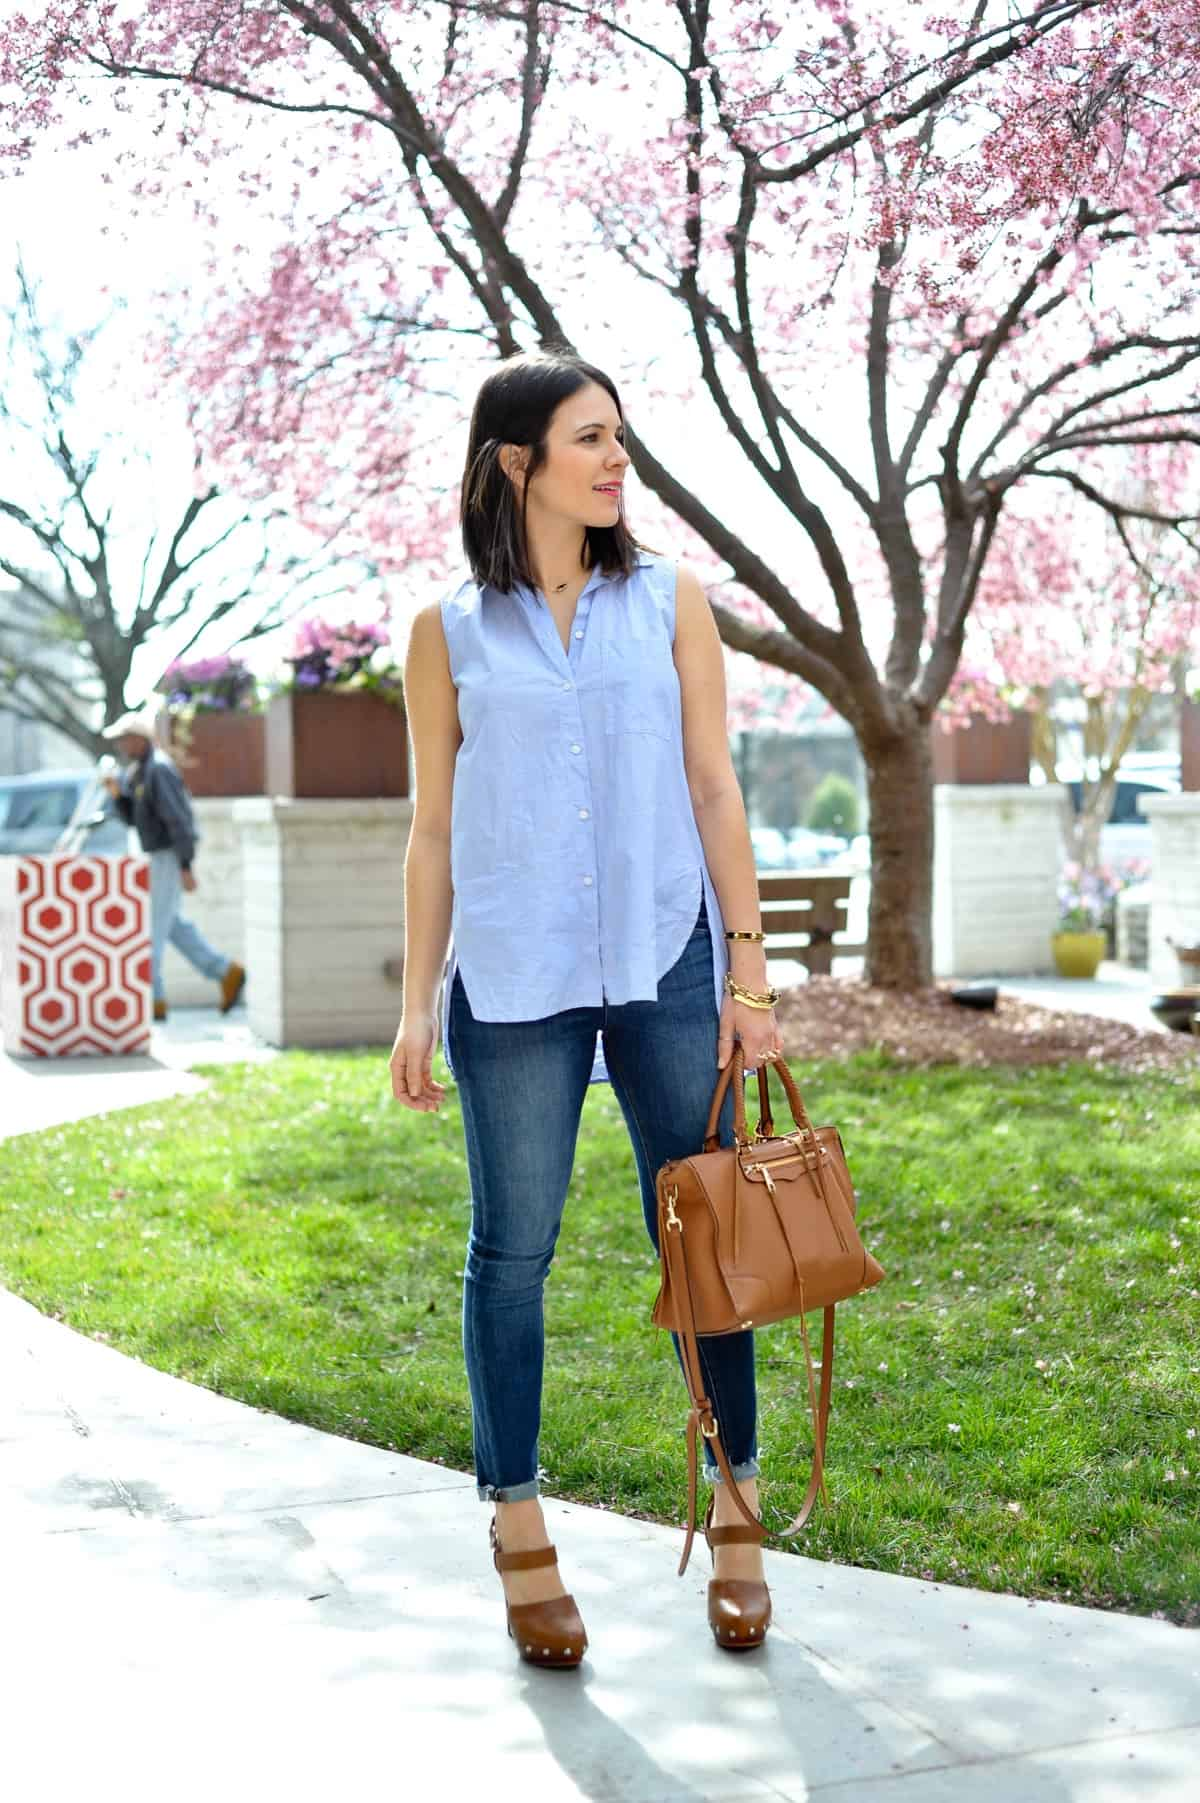 Vince Camuto Elric Shoe for spring - My Style Vita - @mystylevita - 15